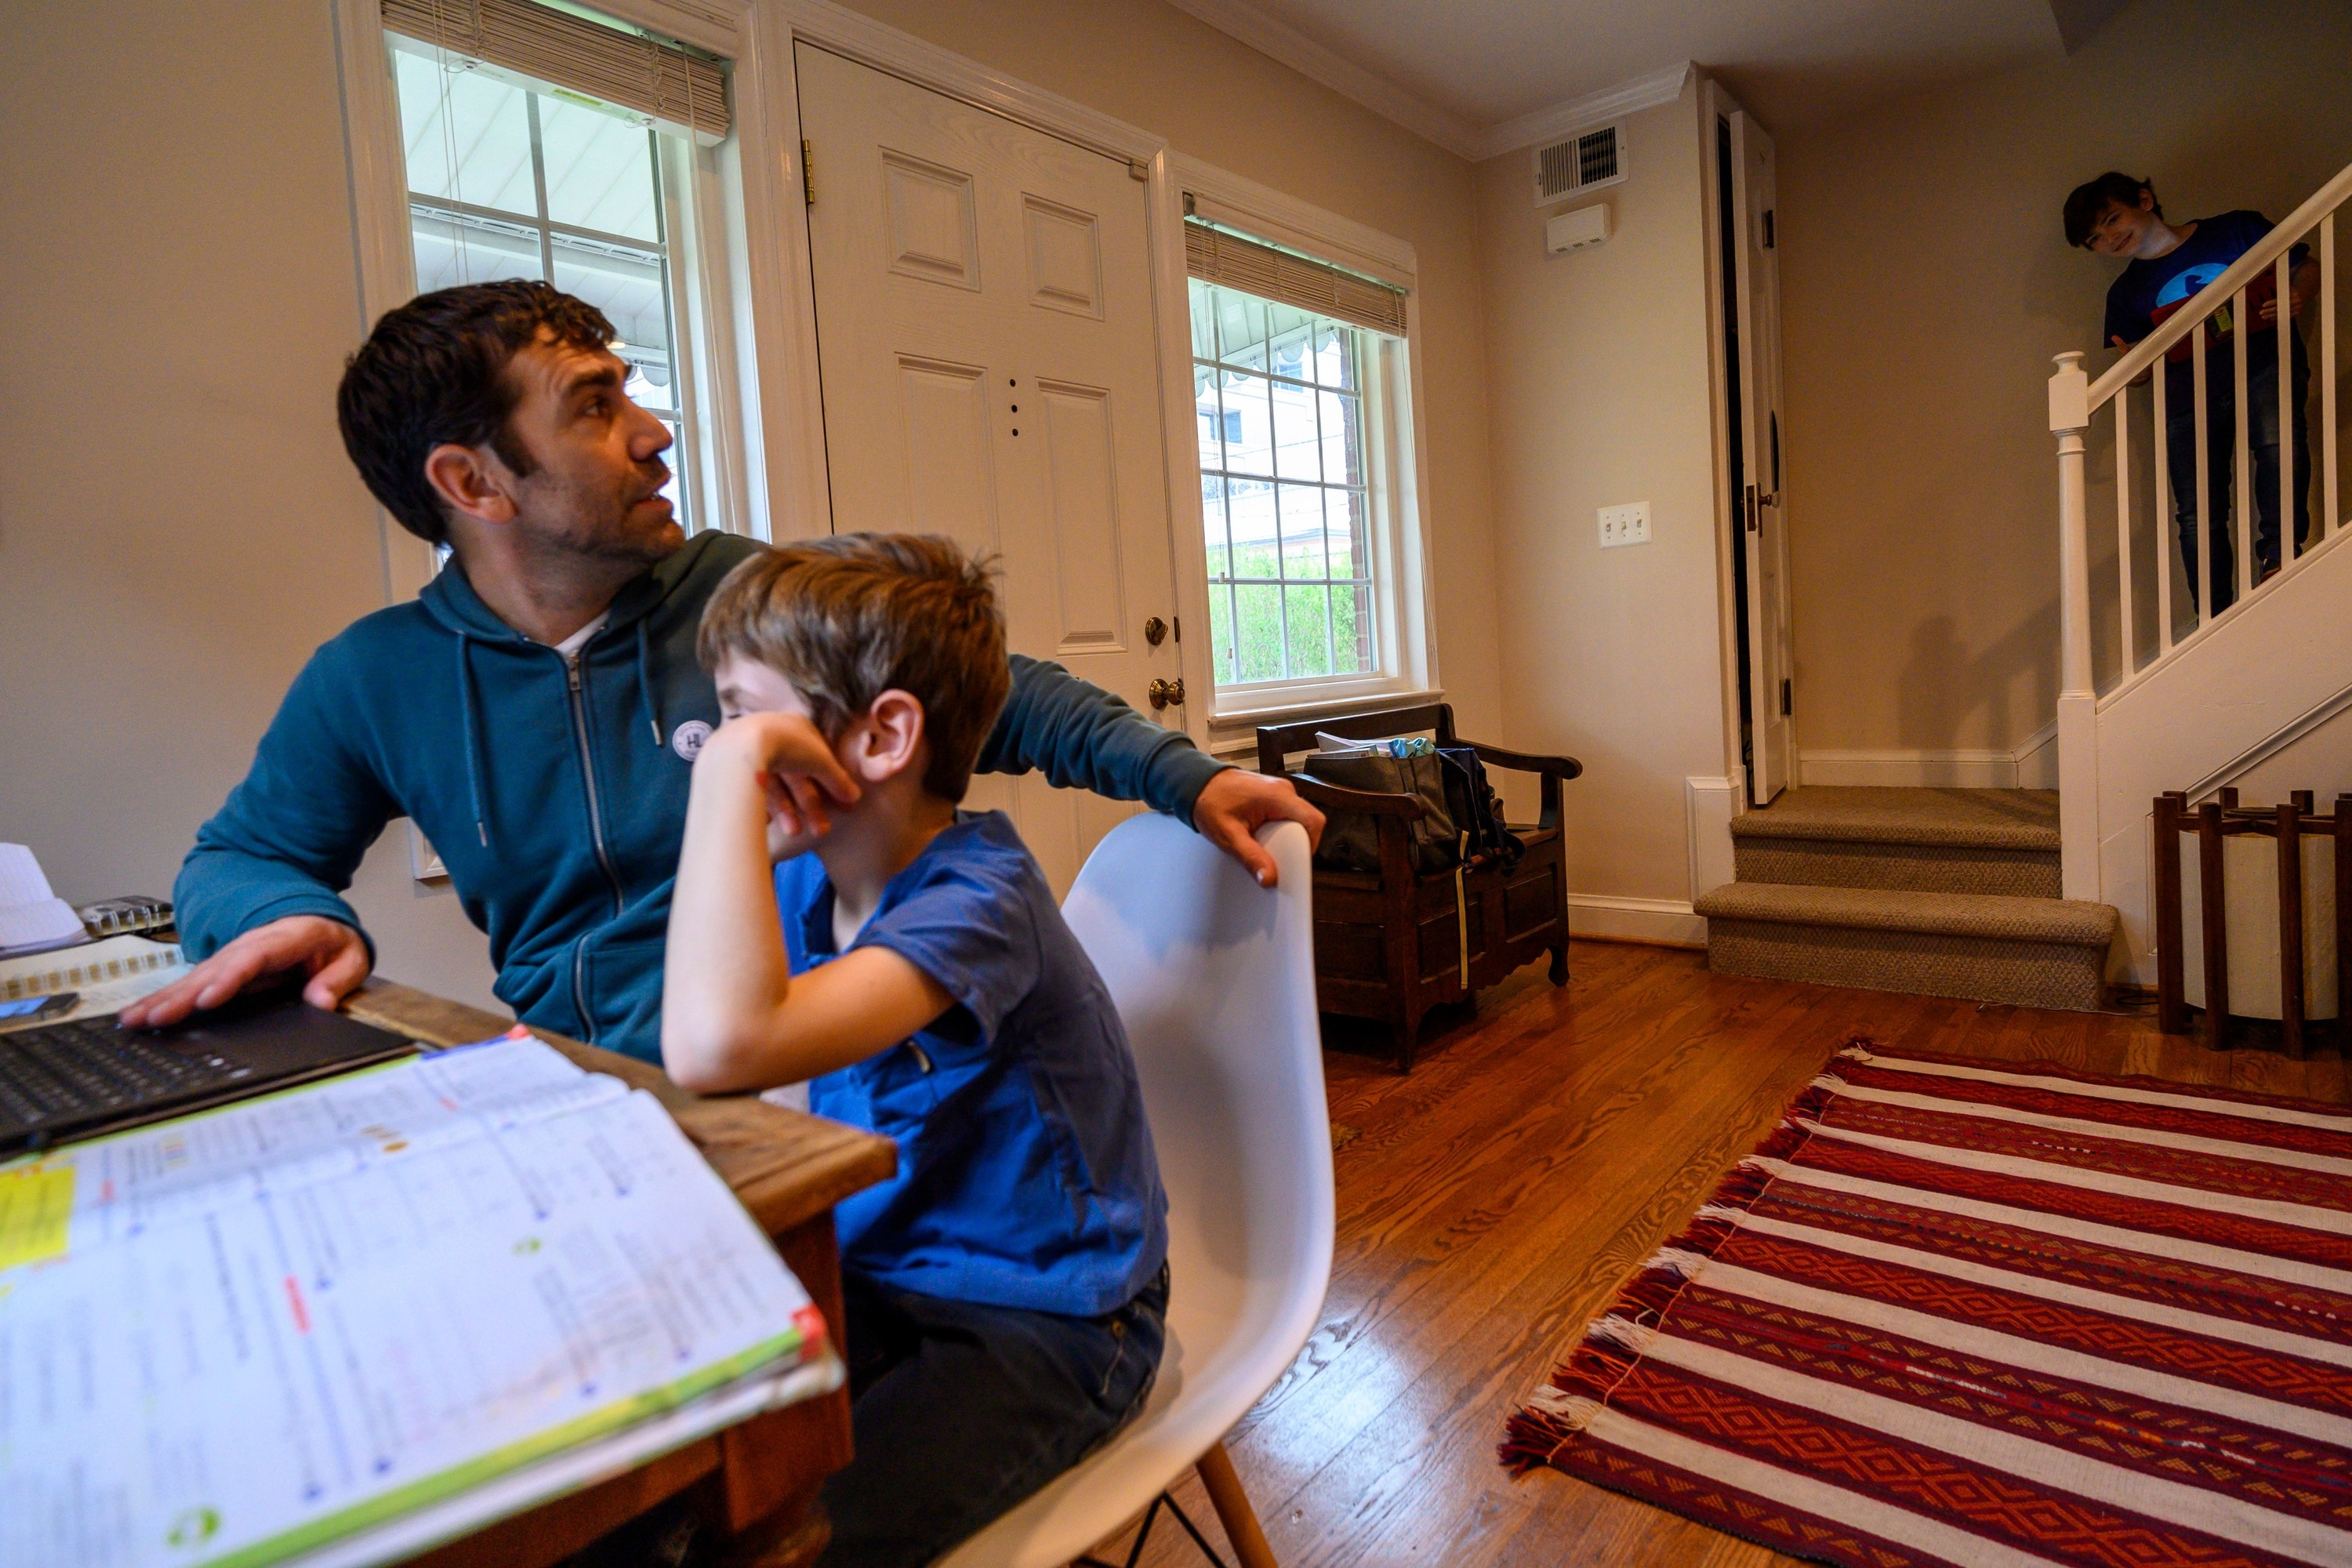 A dad homeschooling his young son.